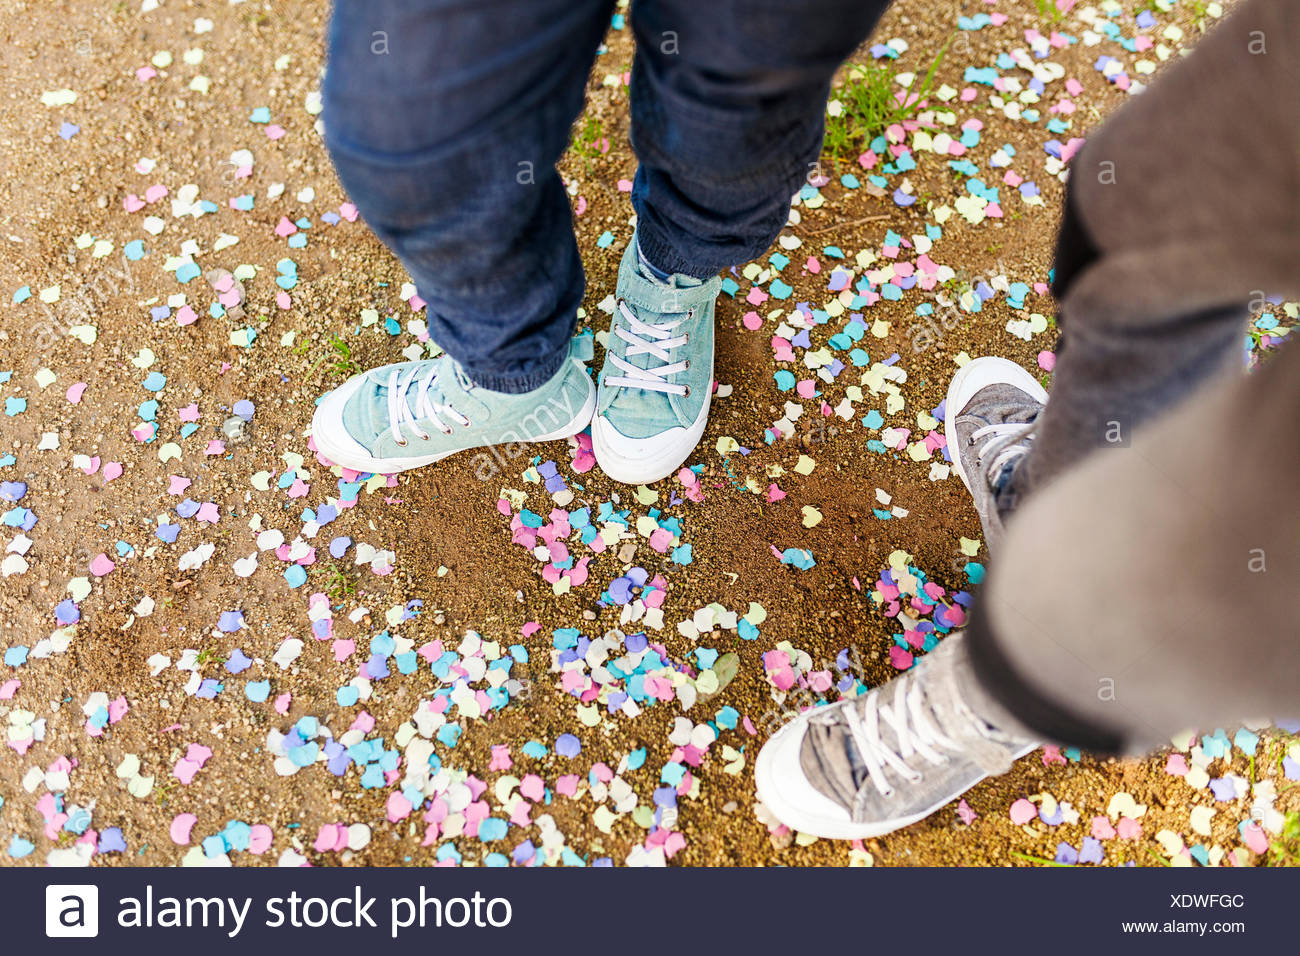 Kids standing on groung full of confetti, wearing sneakers - Stock Image